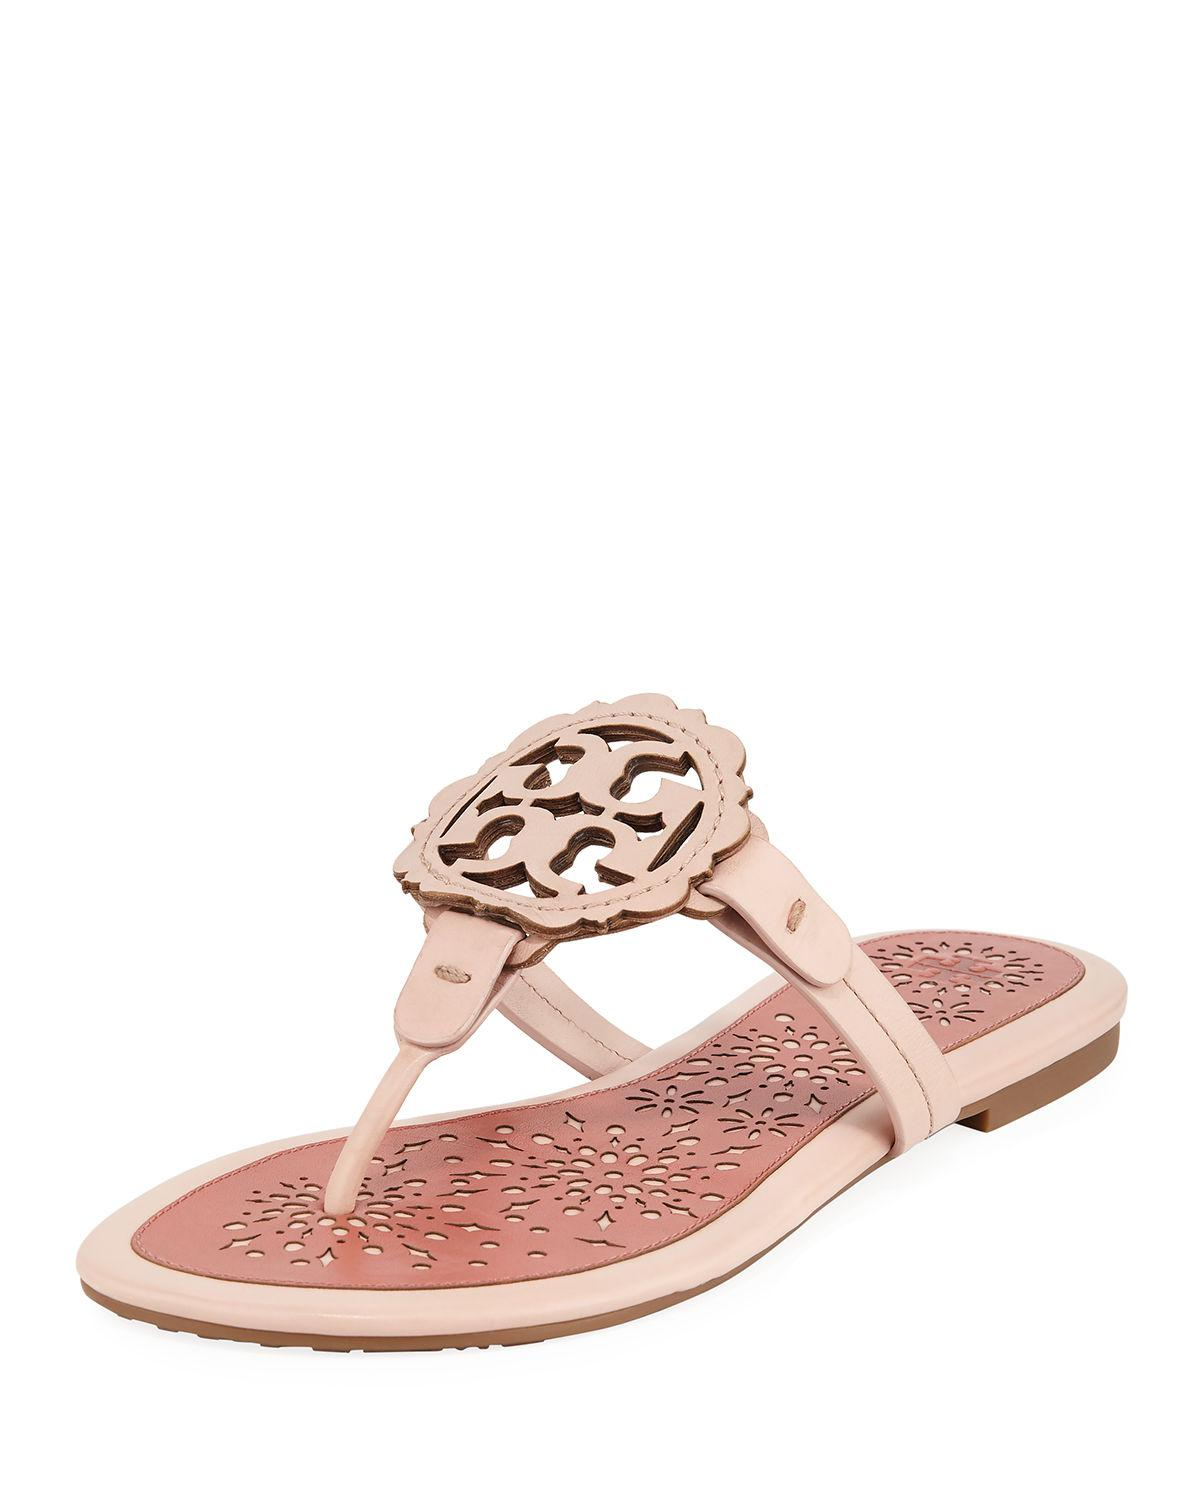 b32ef1d2bbda Tory Burch Women s Miller Scallop Leather Thong Sandals In Sea Shell Pink   Tramonto